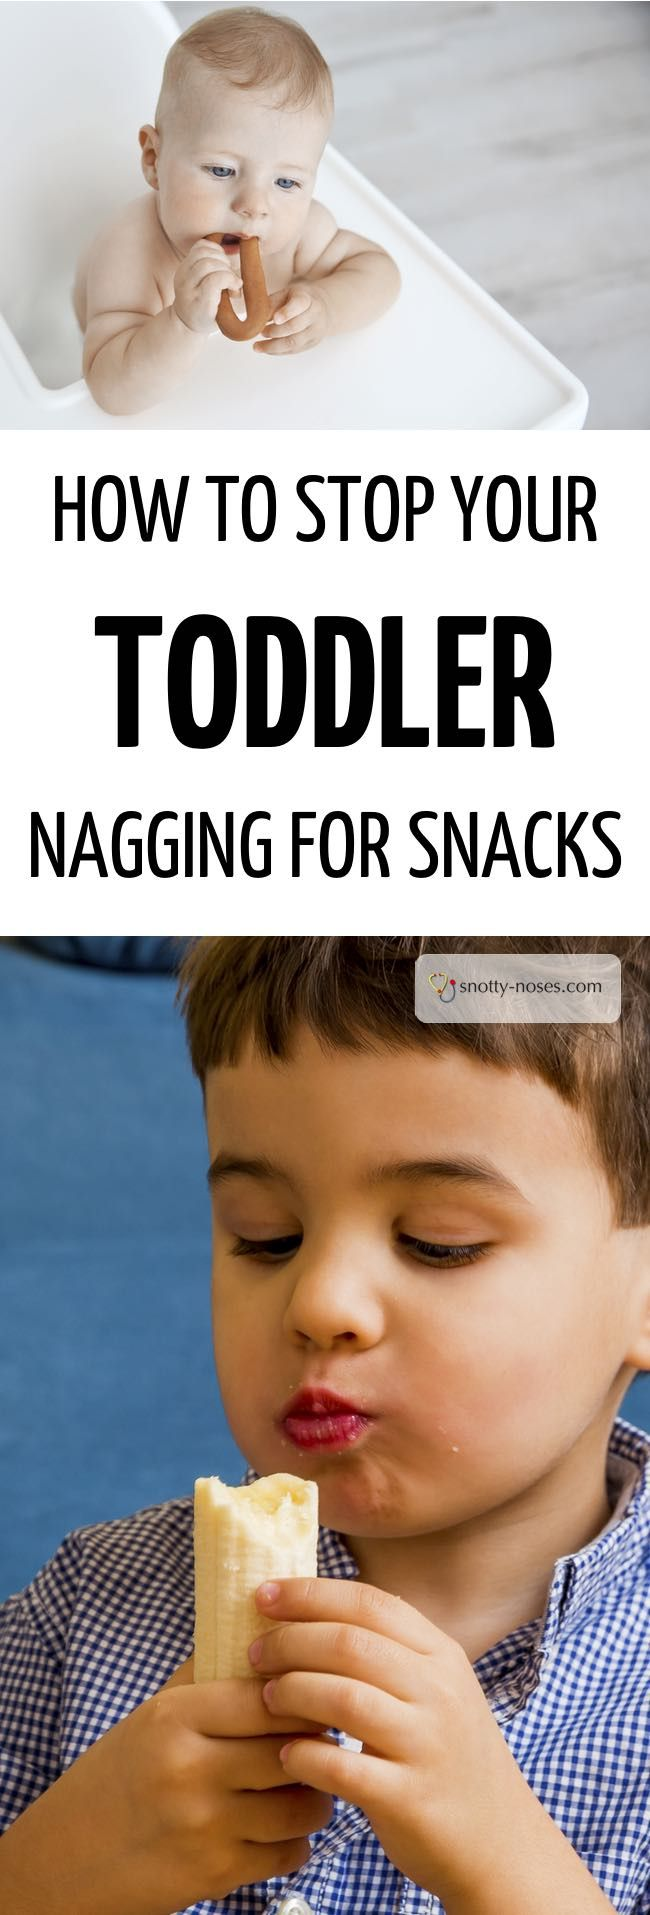 How to Stop Your Toddler or Kids Nagging for Snacks